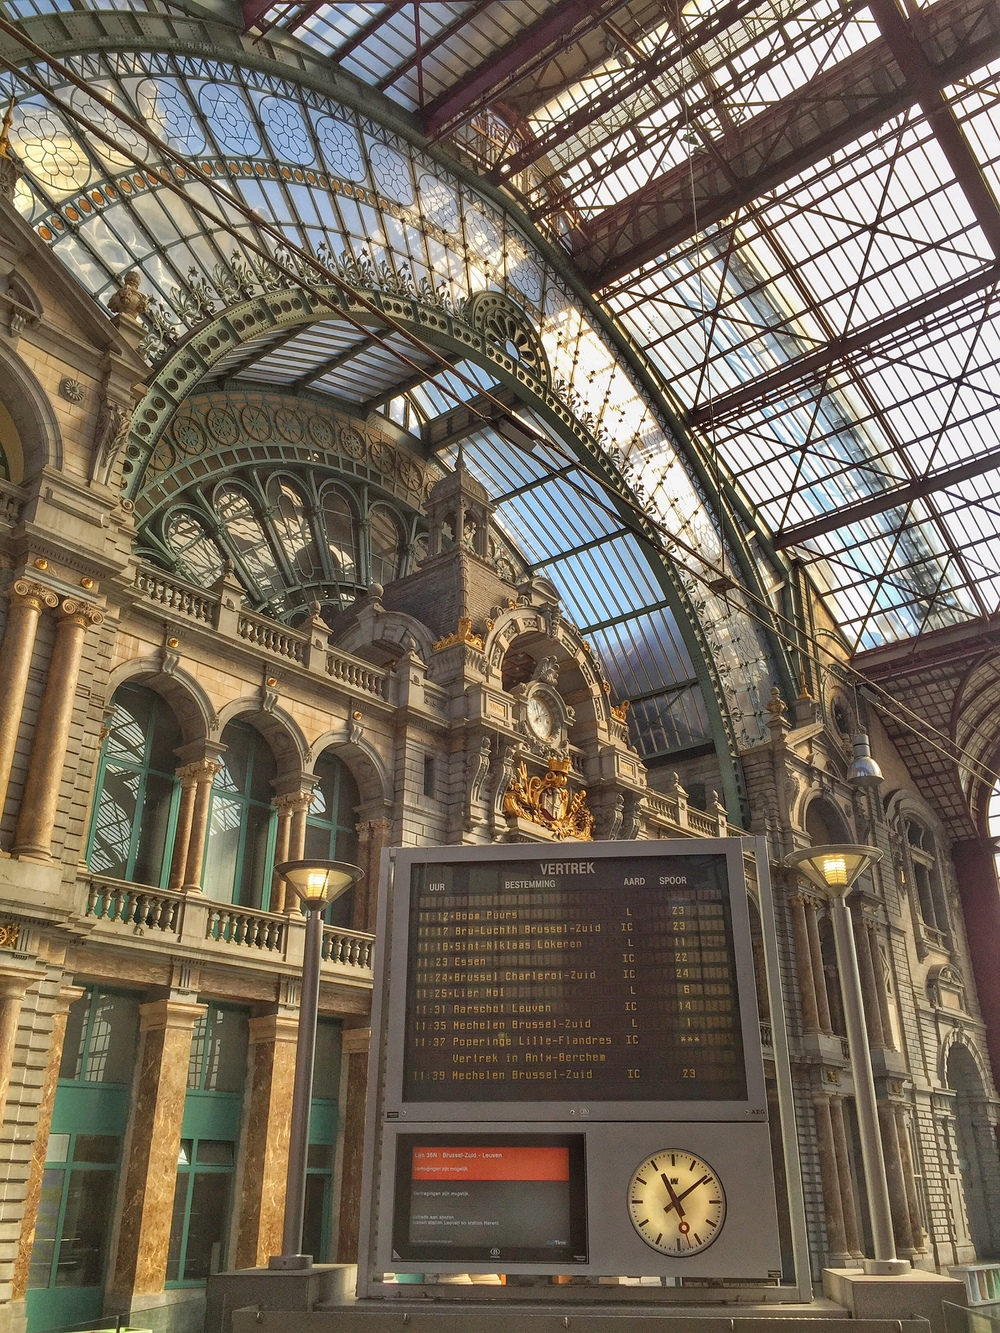 The train station in Antwerp. Rated as one of the most beautiful stations in the world.